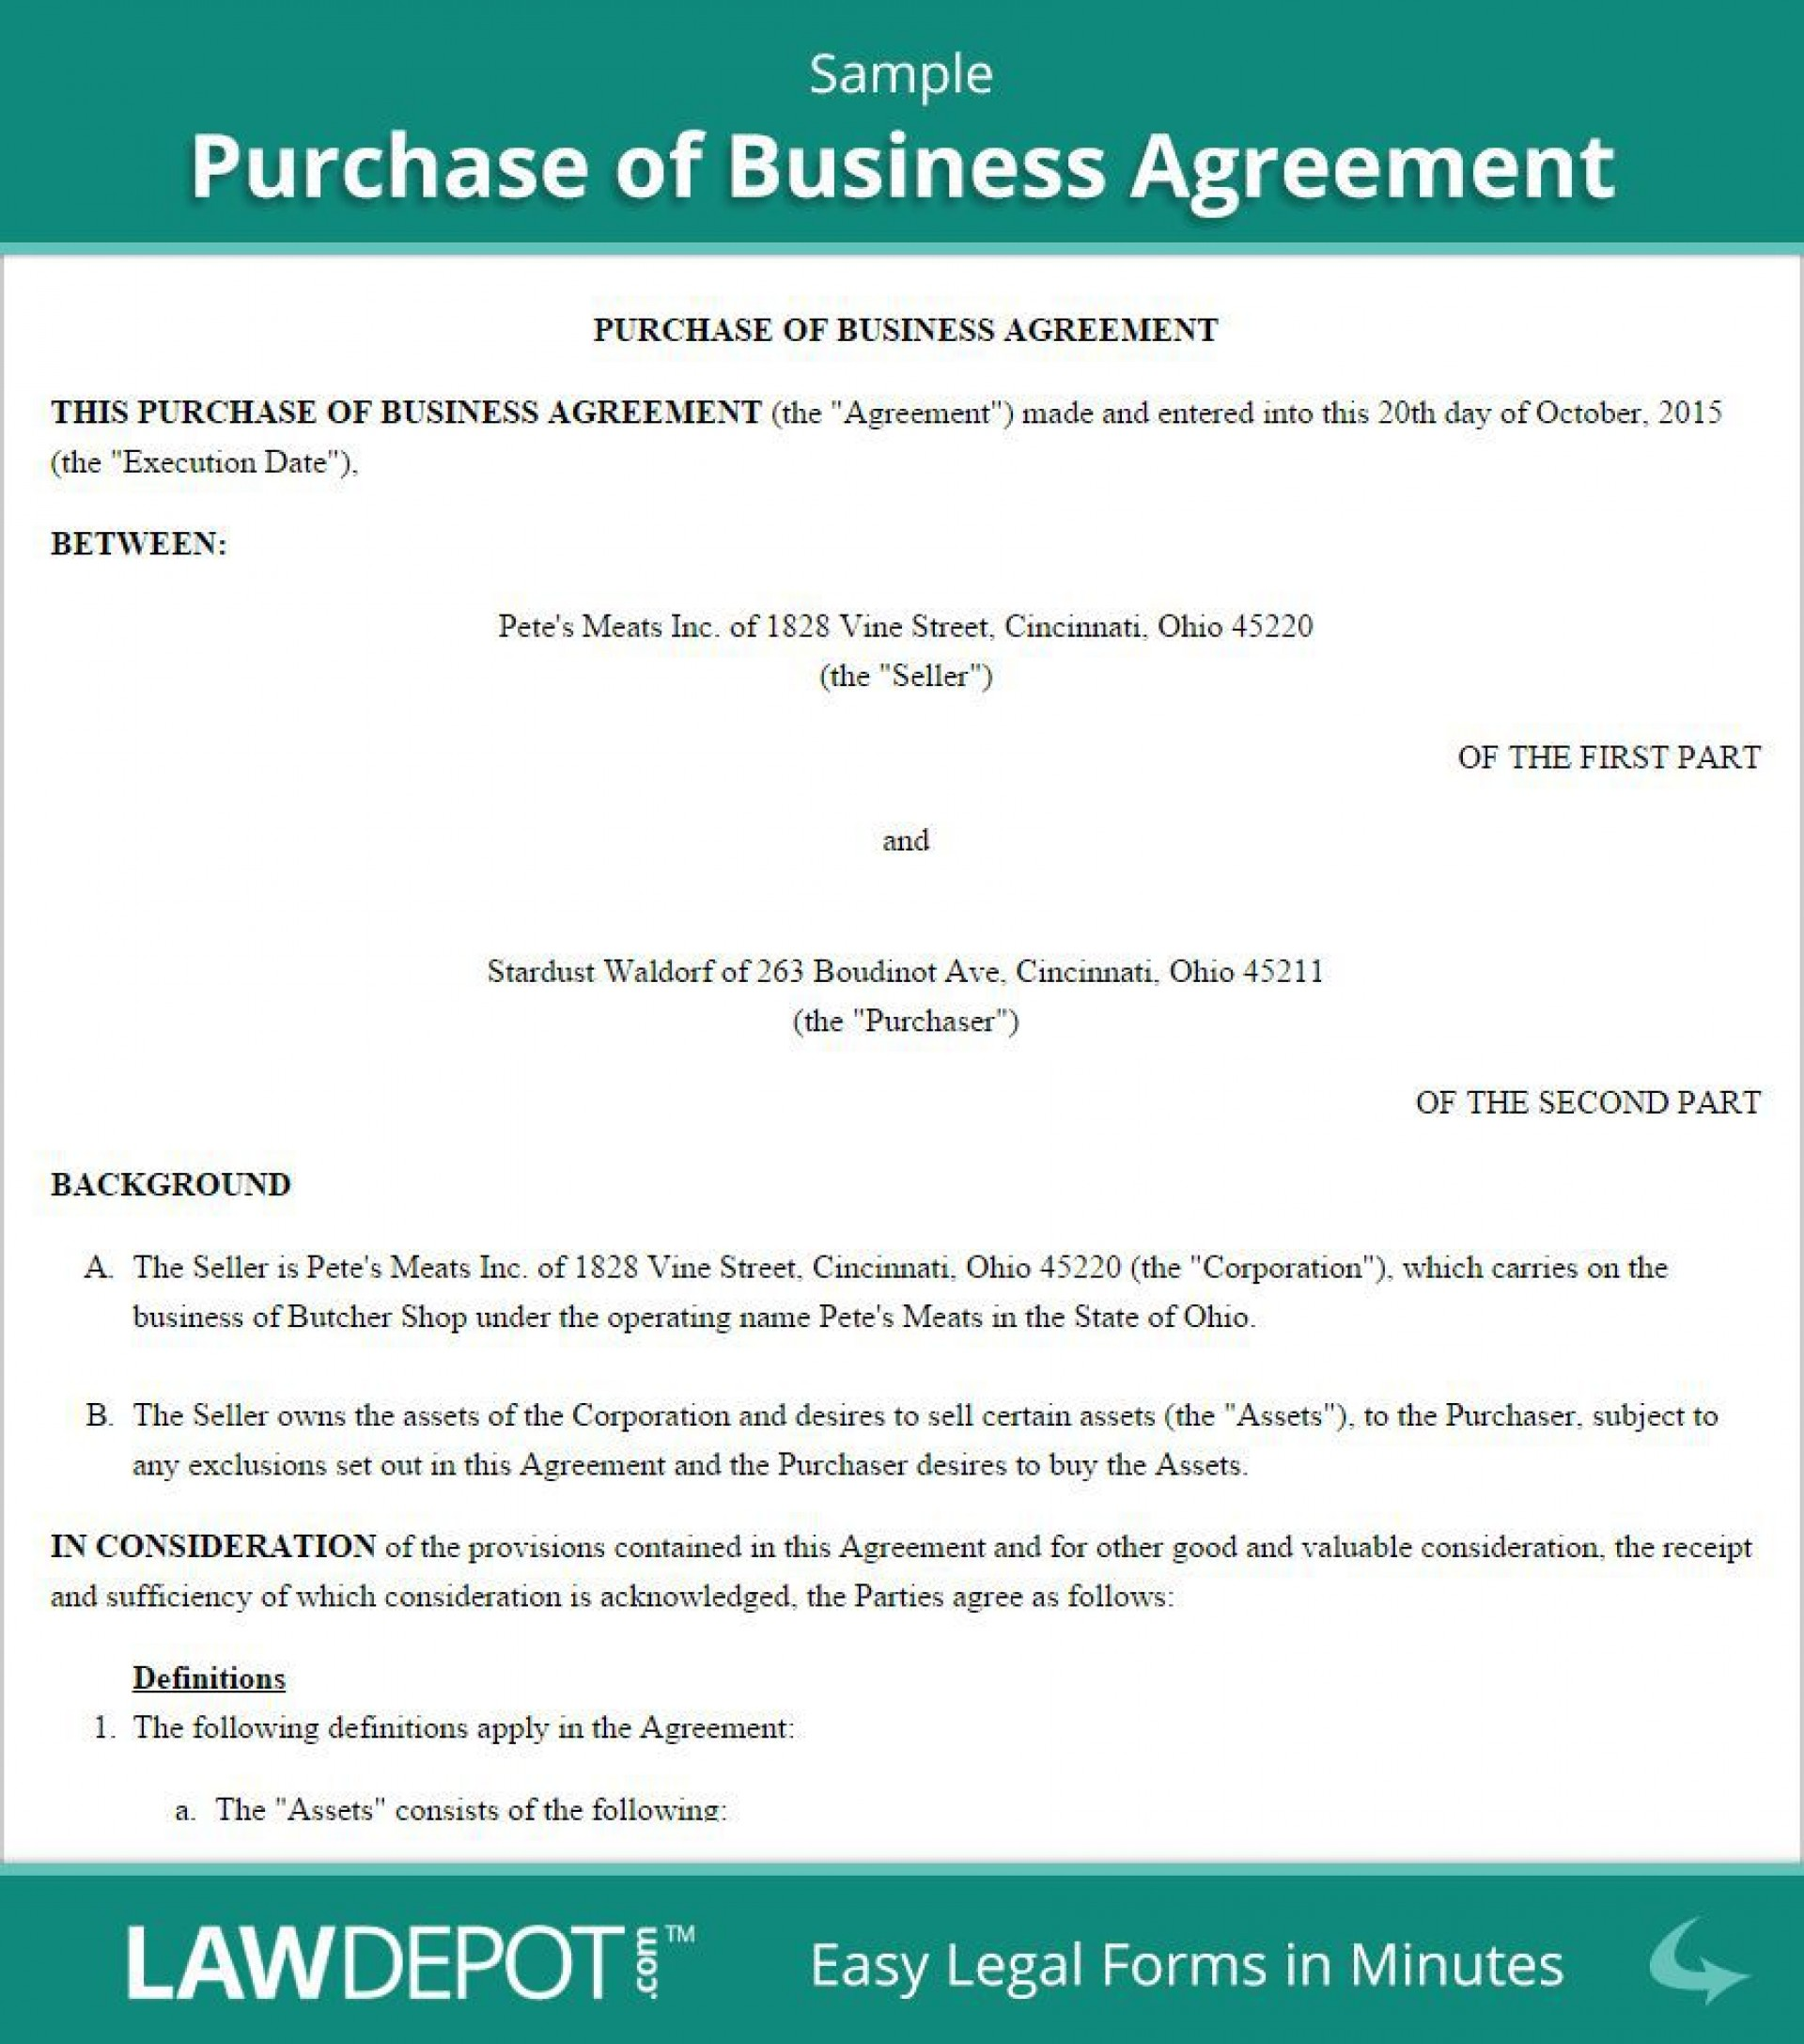 001 Shocking Buy Sell Agreement Template Free Download Design  Busines Sale Nz Purchase1920